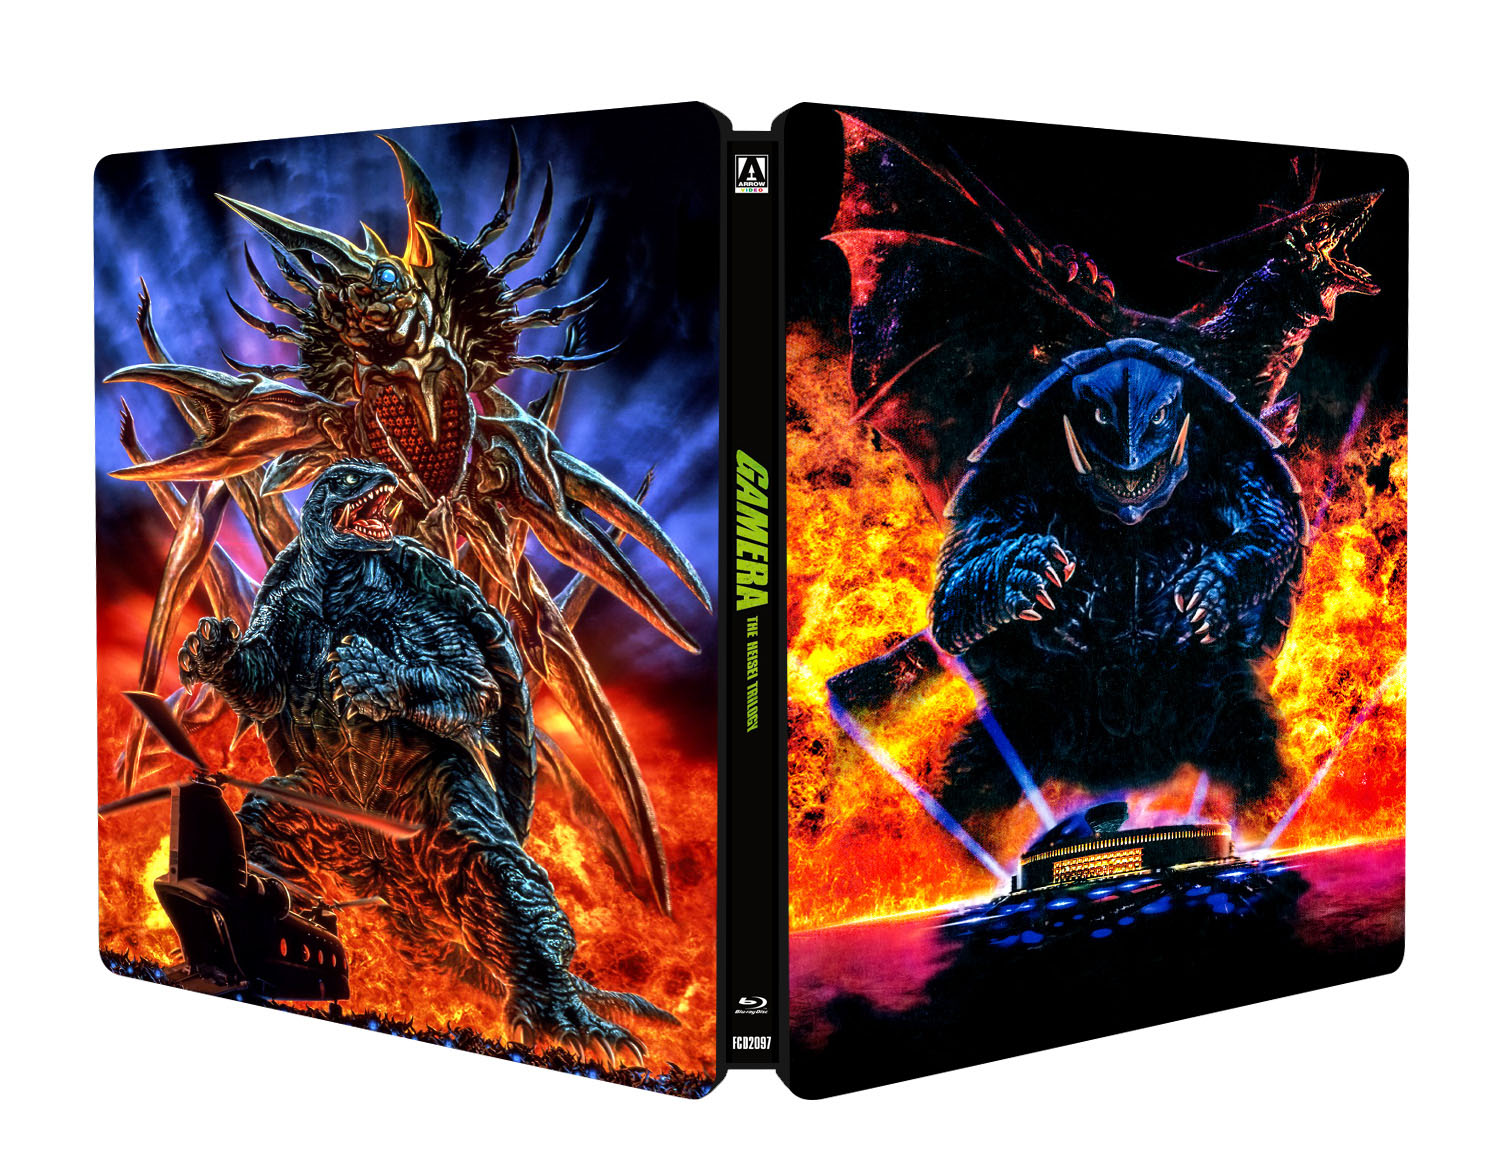 Win GAMERA: THE HEISEI TRILOGY Limited Edition Blu-ray Steelbook From Arrow Video US and MVD Entertainment!